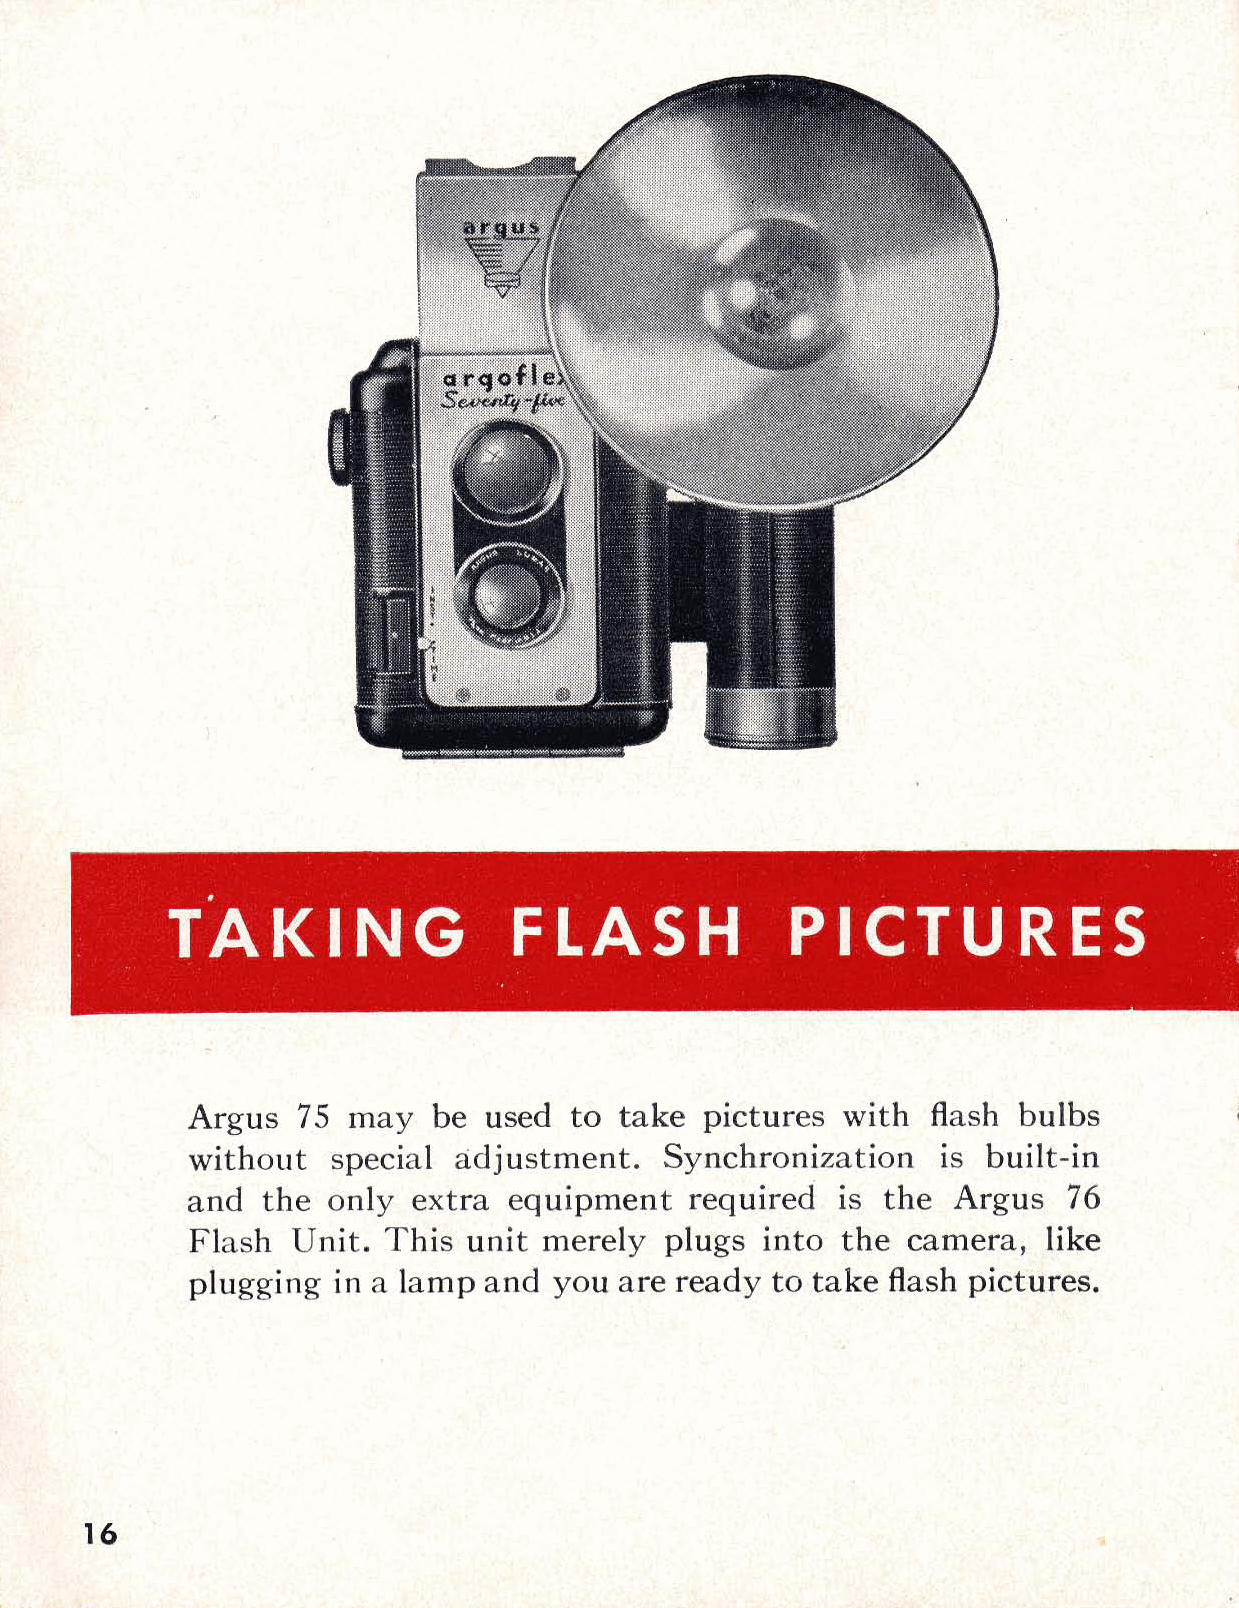 argus 75 instructions for use ann arbor district library rh aadl org Old Argus Camera Values $75 Vintage Argus Camera